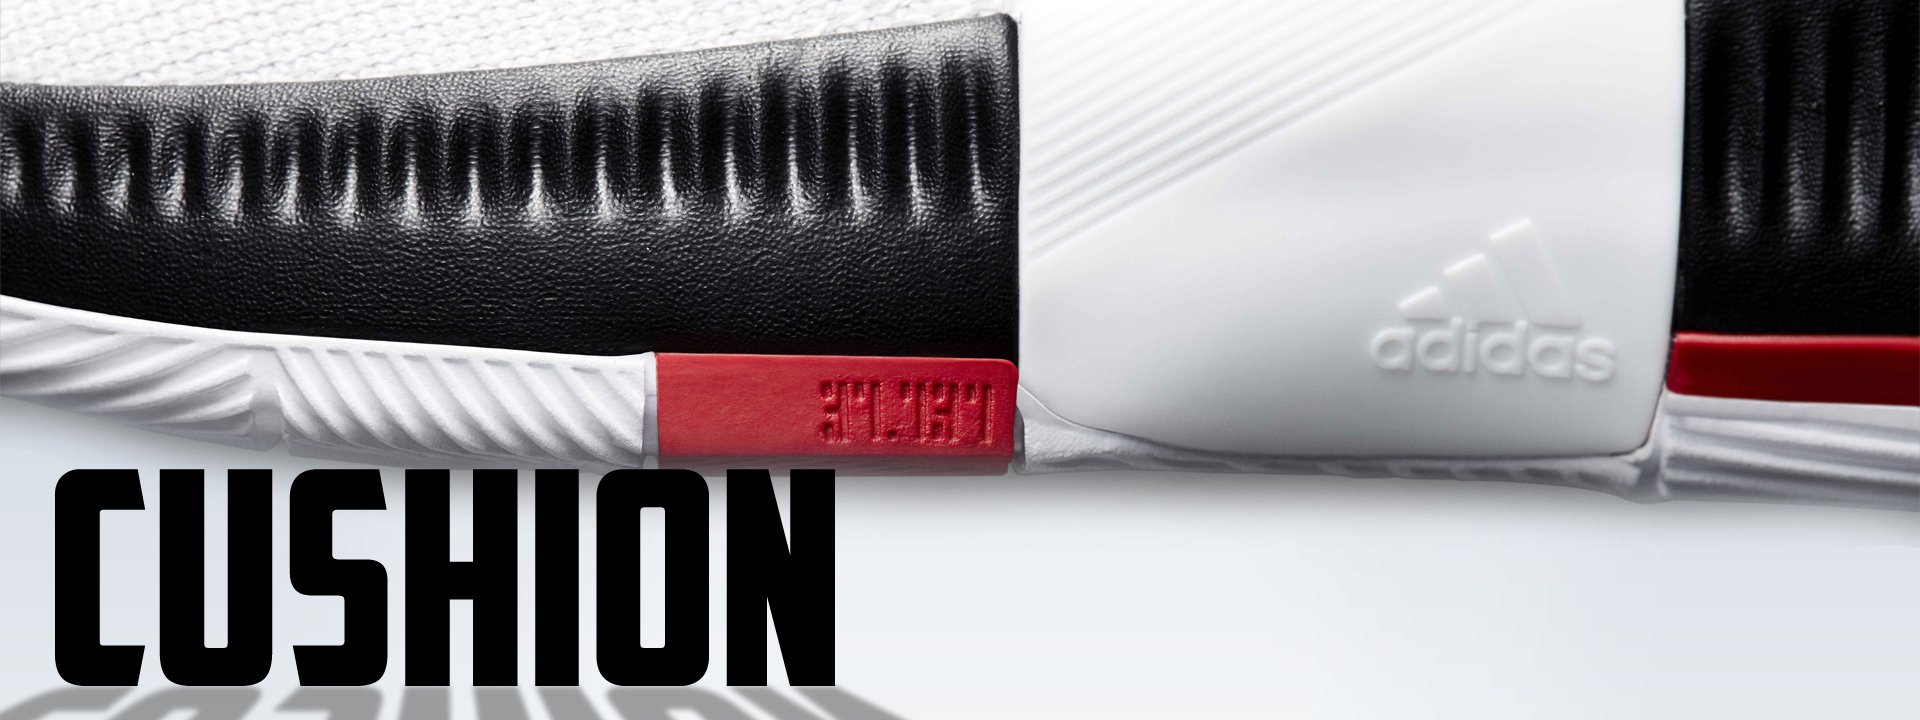 adidas dame 3 performance review cushion